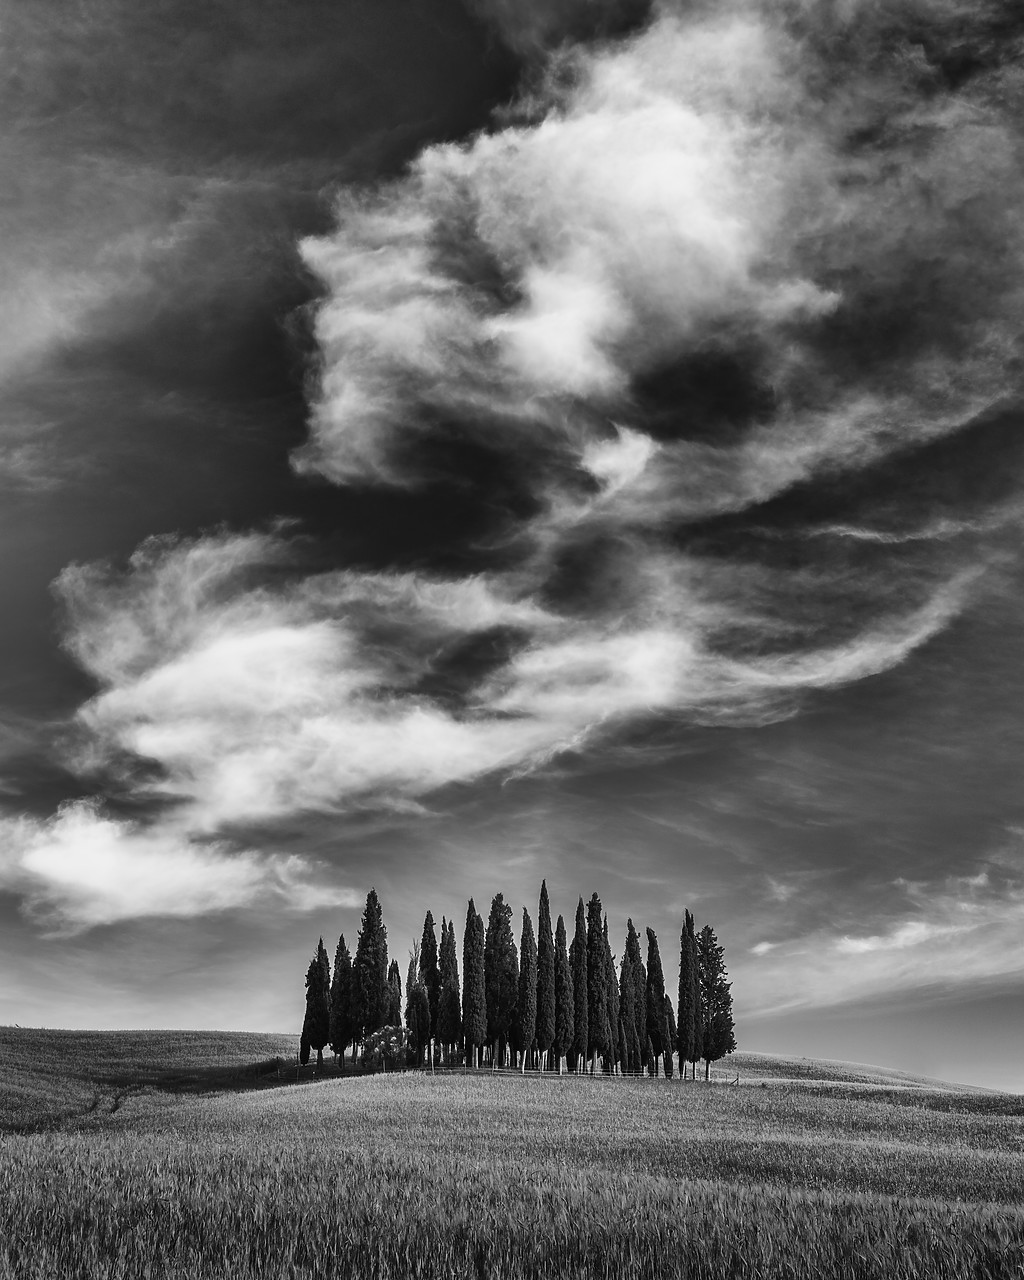 #170750-2 - Cypress Trees & Cloud Formation, Val d'Orcia Tuscany, Italy